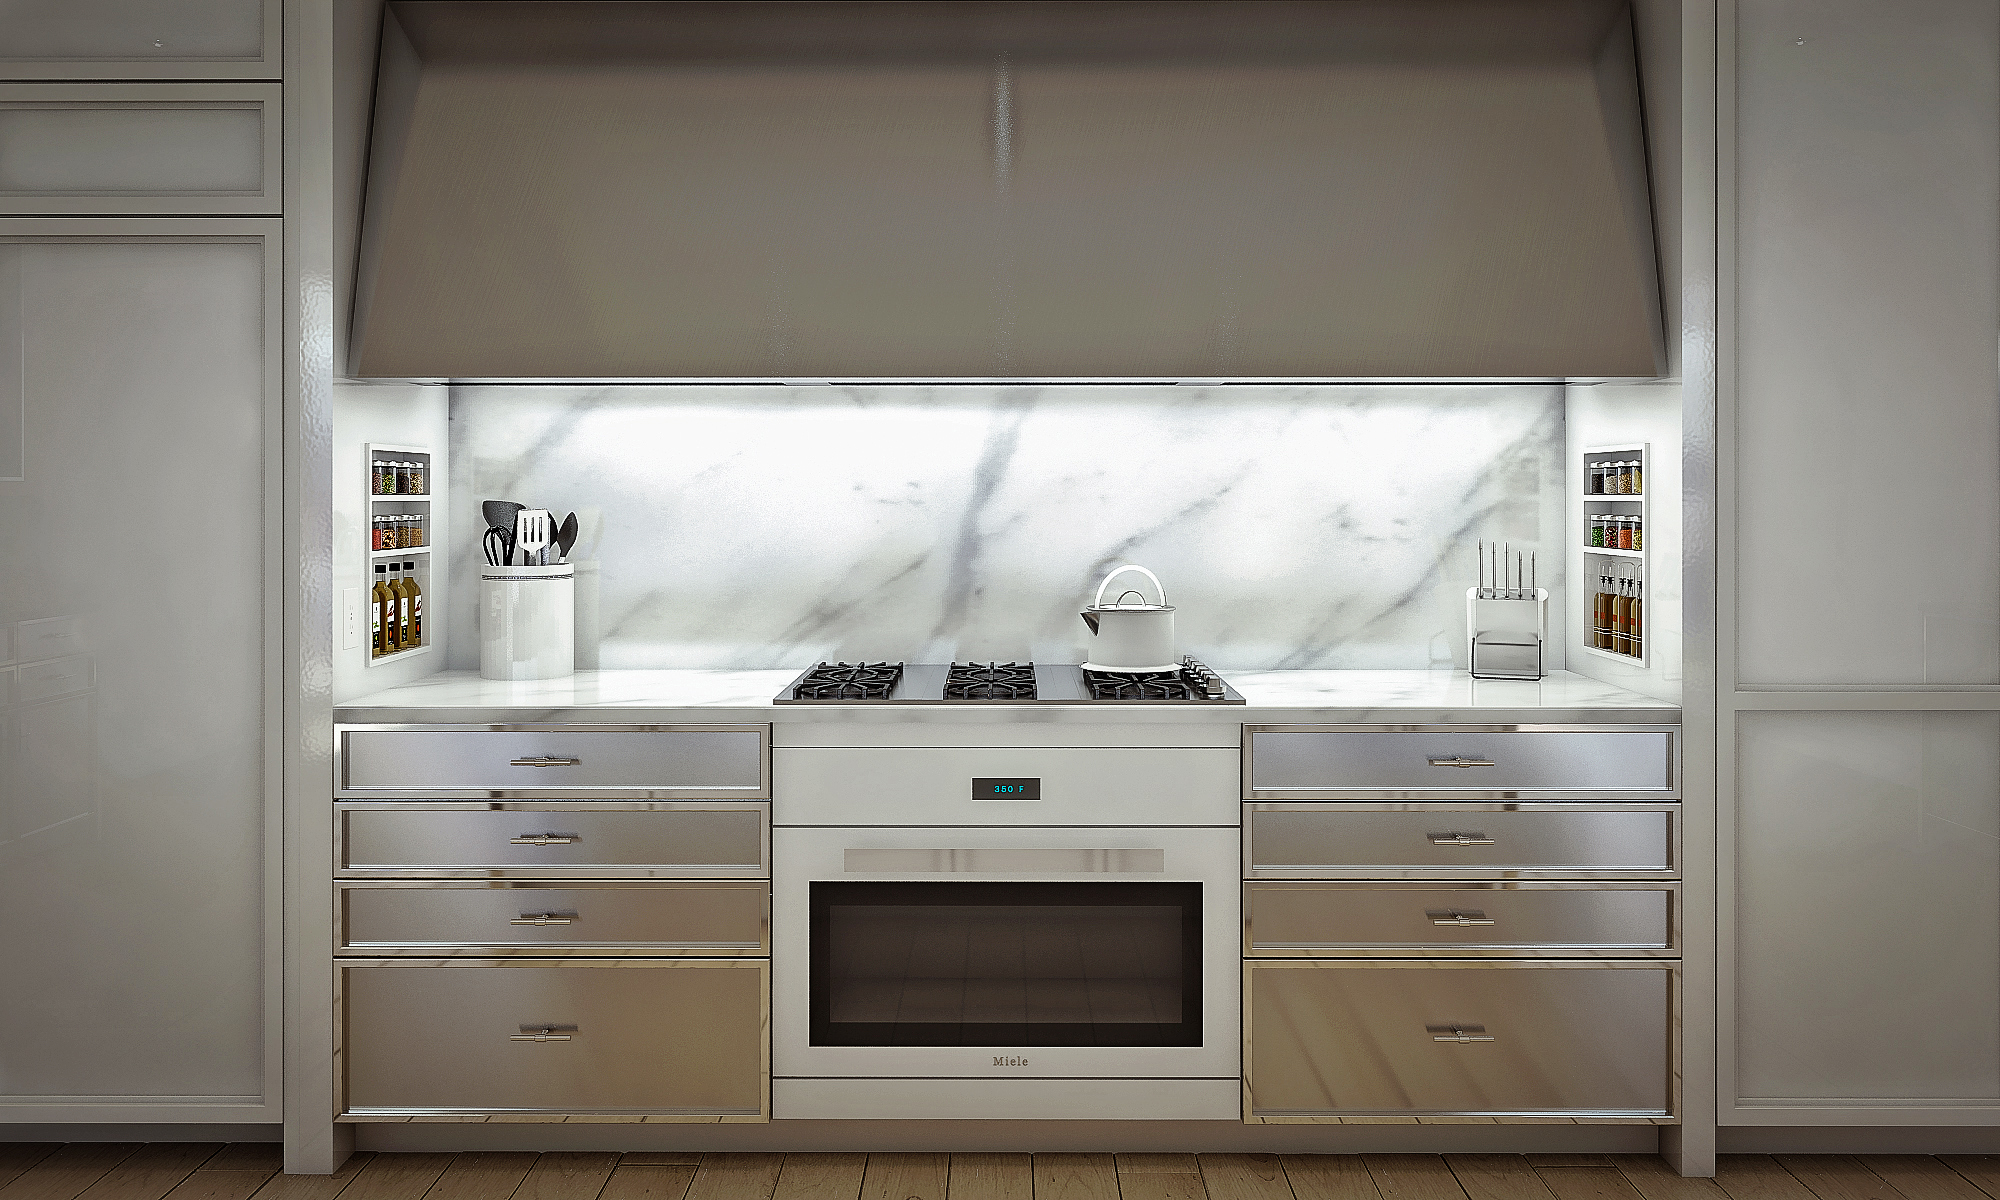 ARCHITECTURAL IMAGERY_IRP KITCHENS__06.jpg